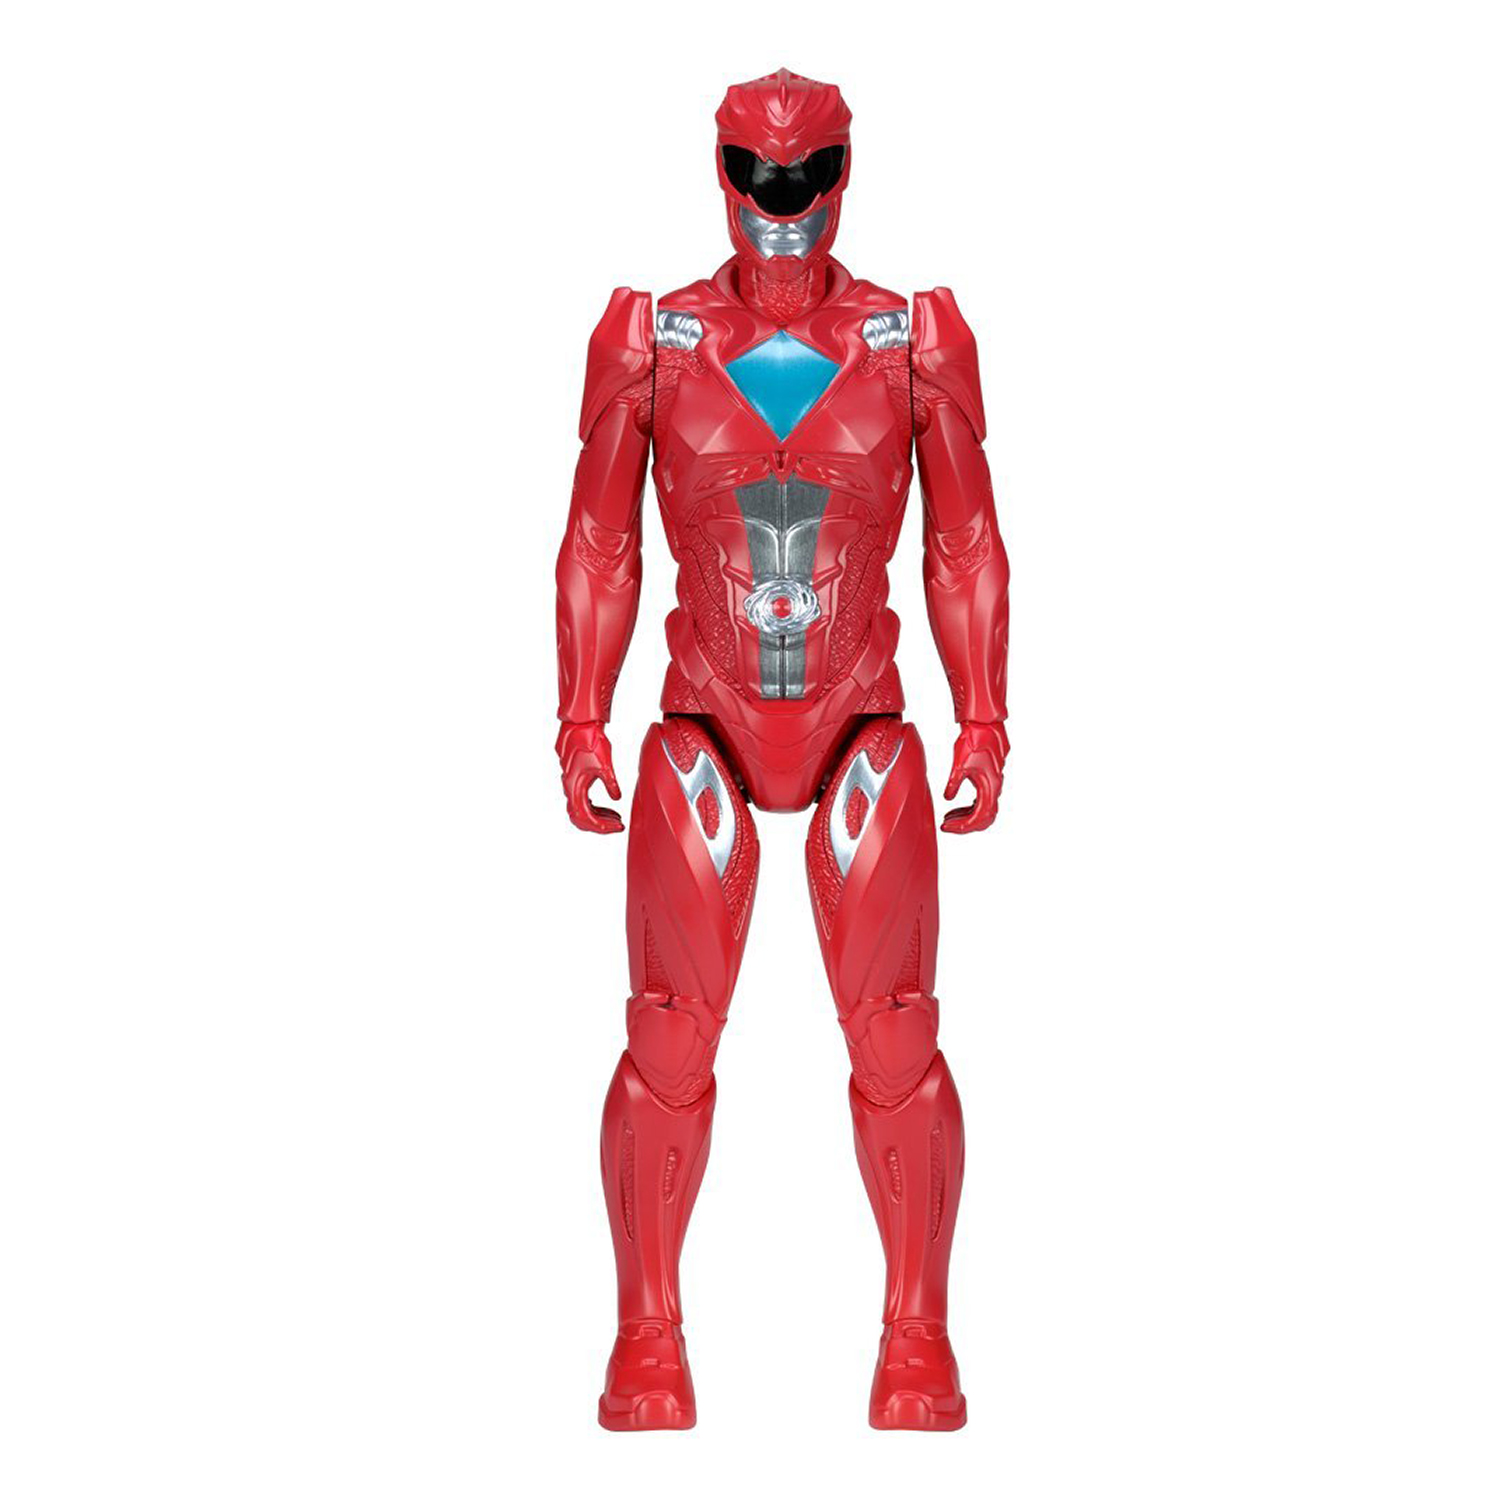 figurina power rangers, 30 cm